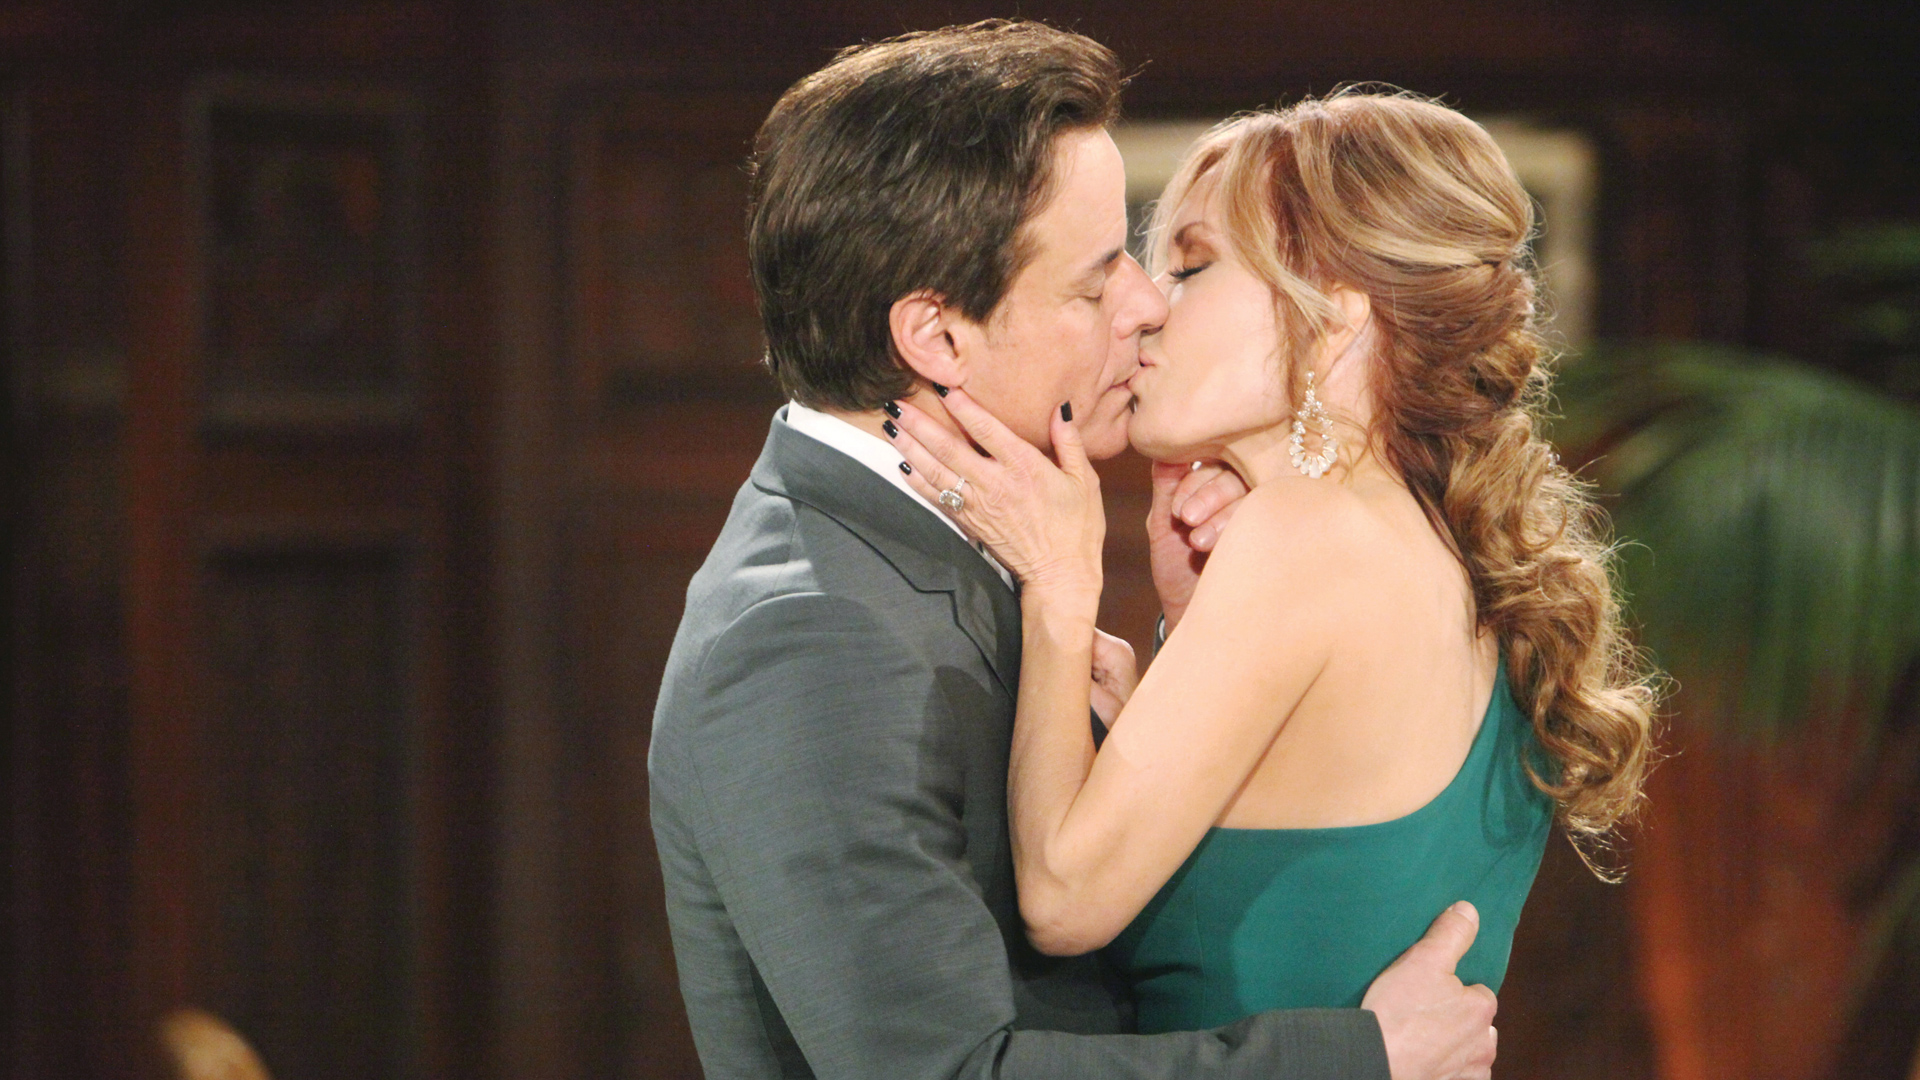 Christian Jules Le Blanc and Tracey E. Bregman, The Young and the Restless